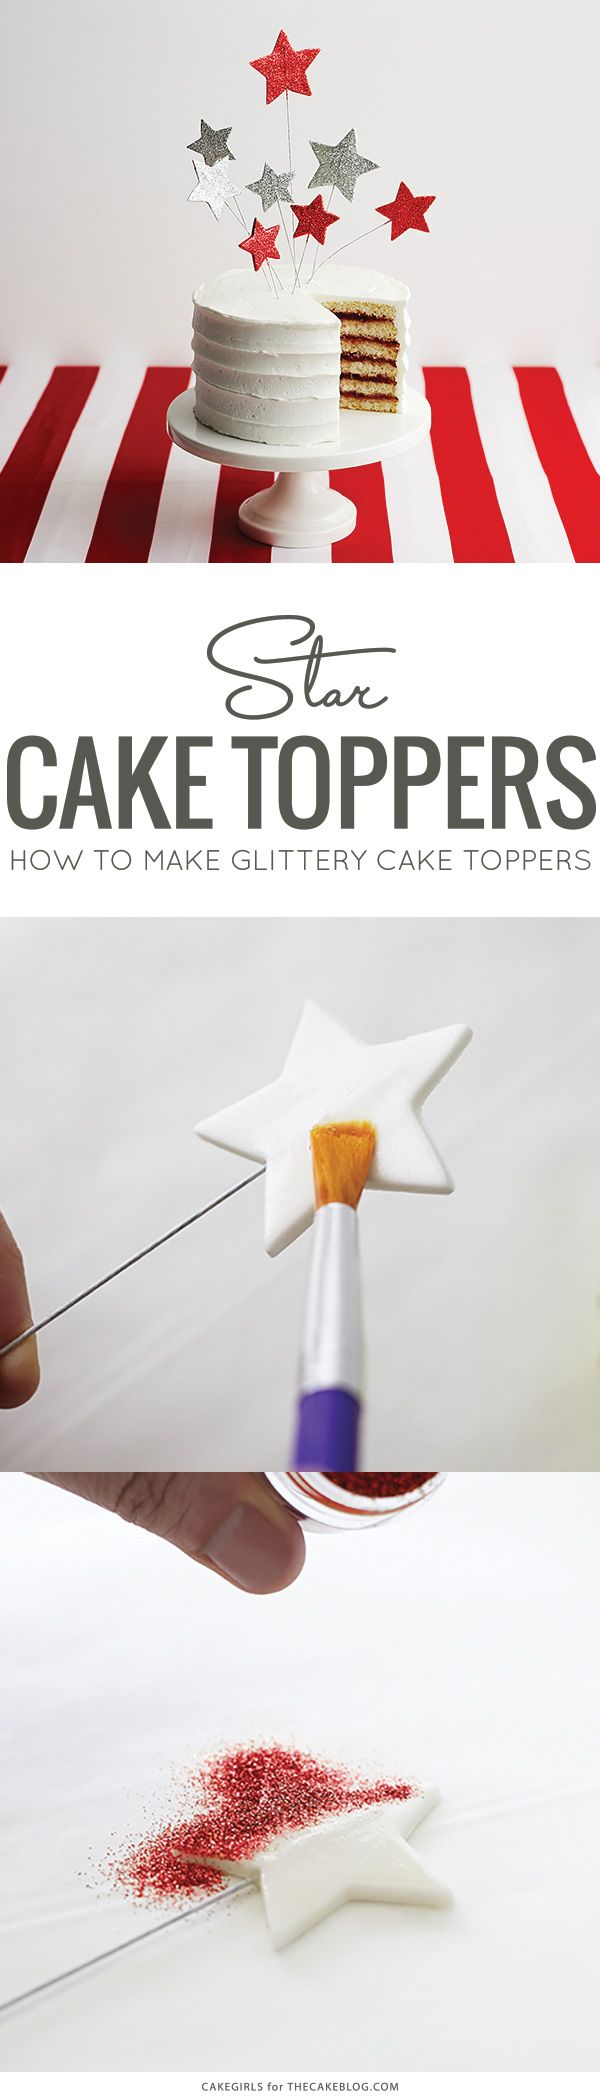 How to make Glittery Star Cake Toppers | Stars & Stripes Cake by Cakegirls for TheCakeBlog.com